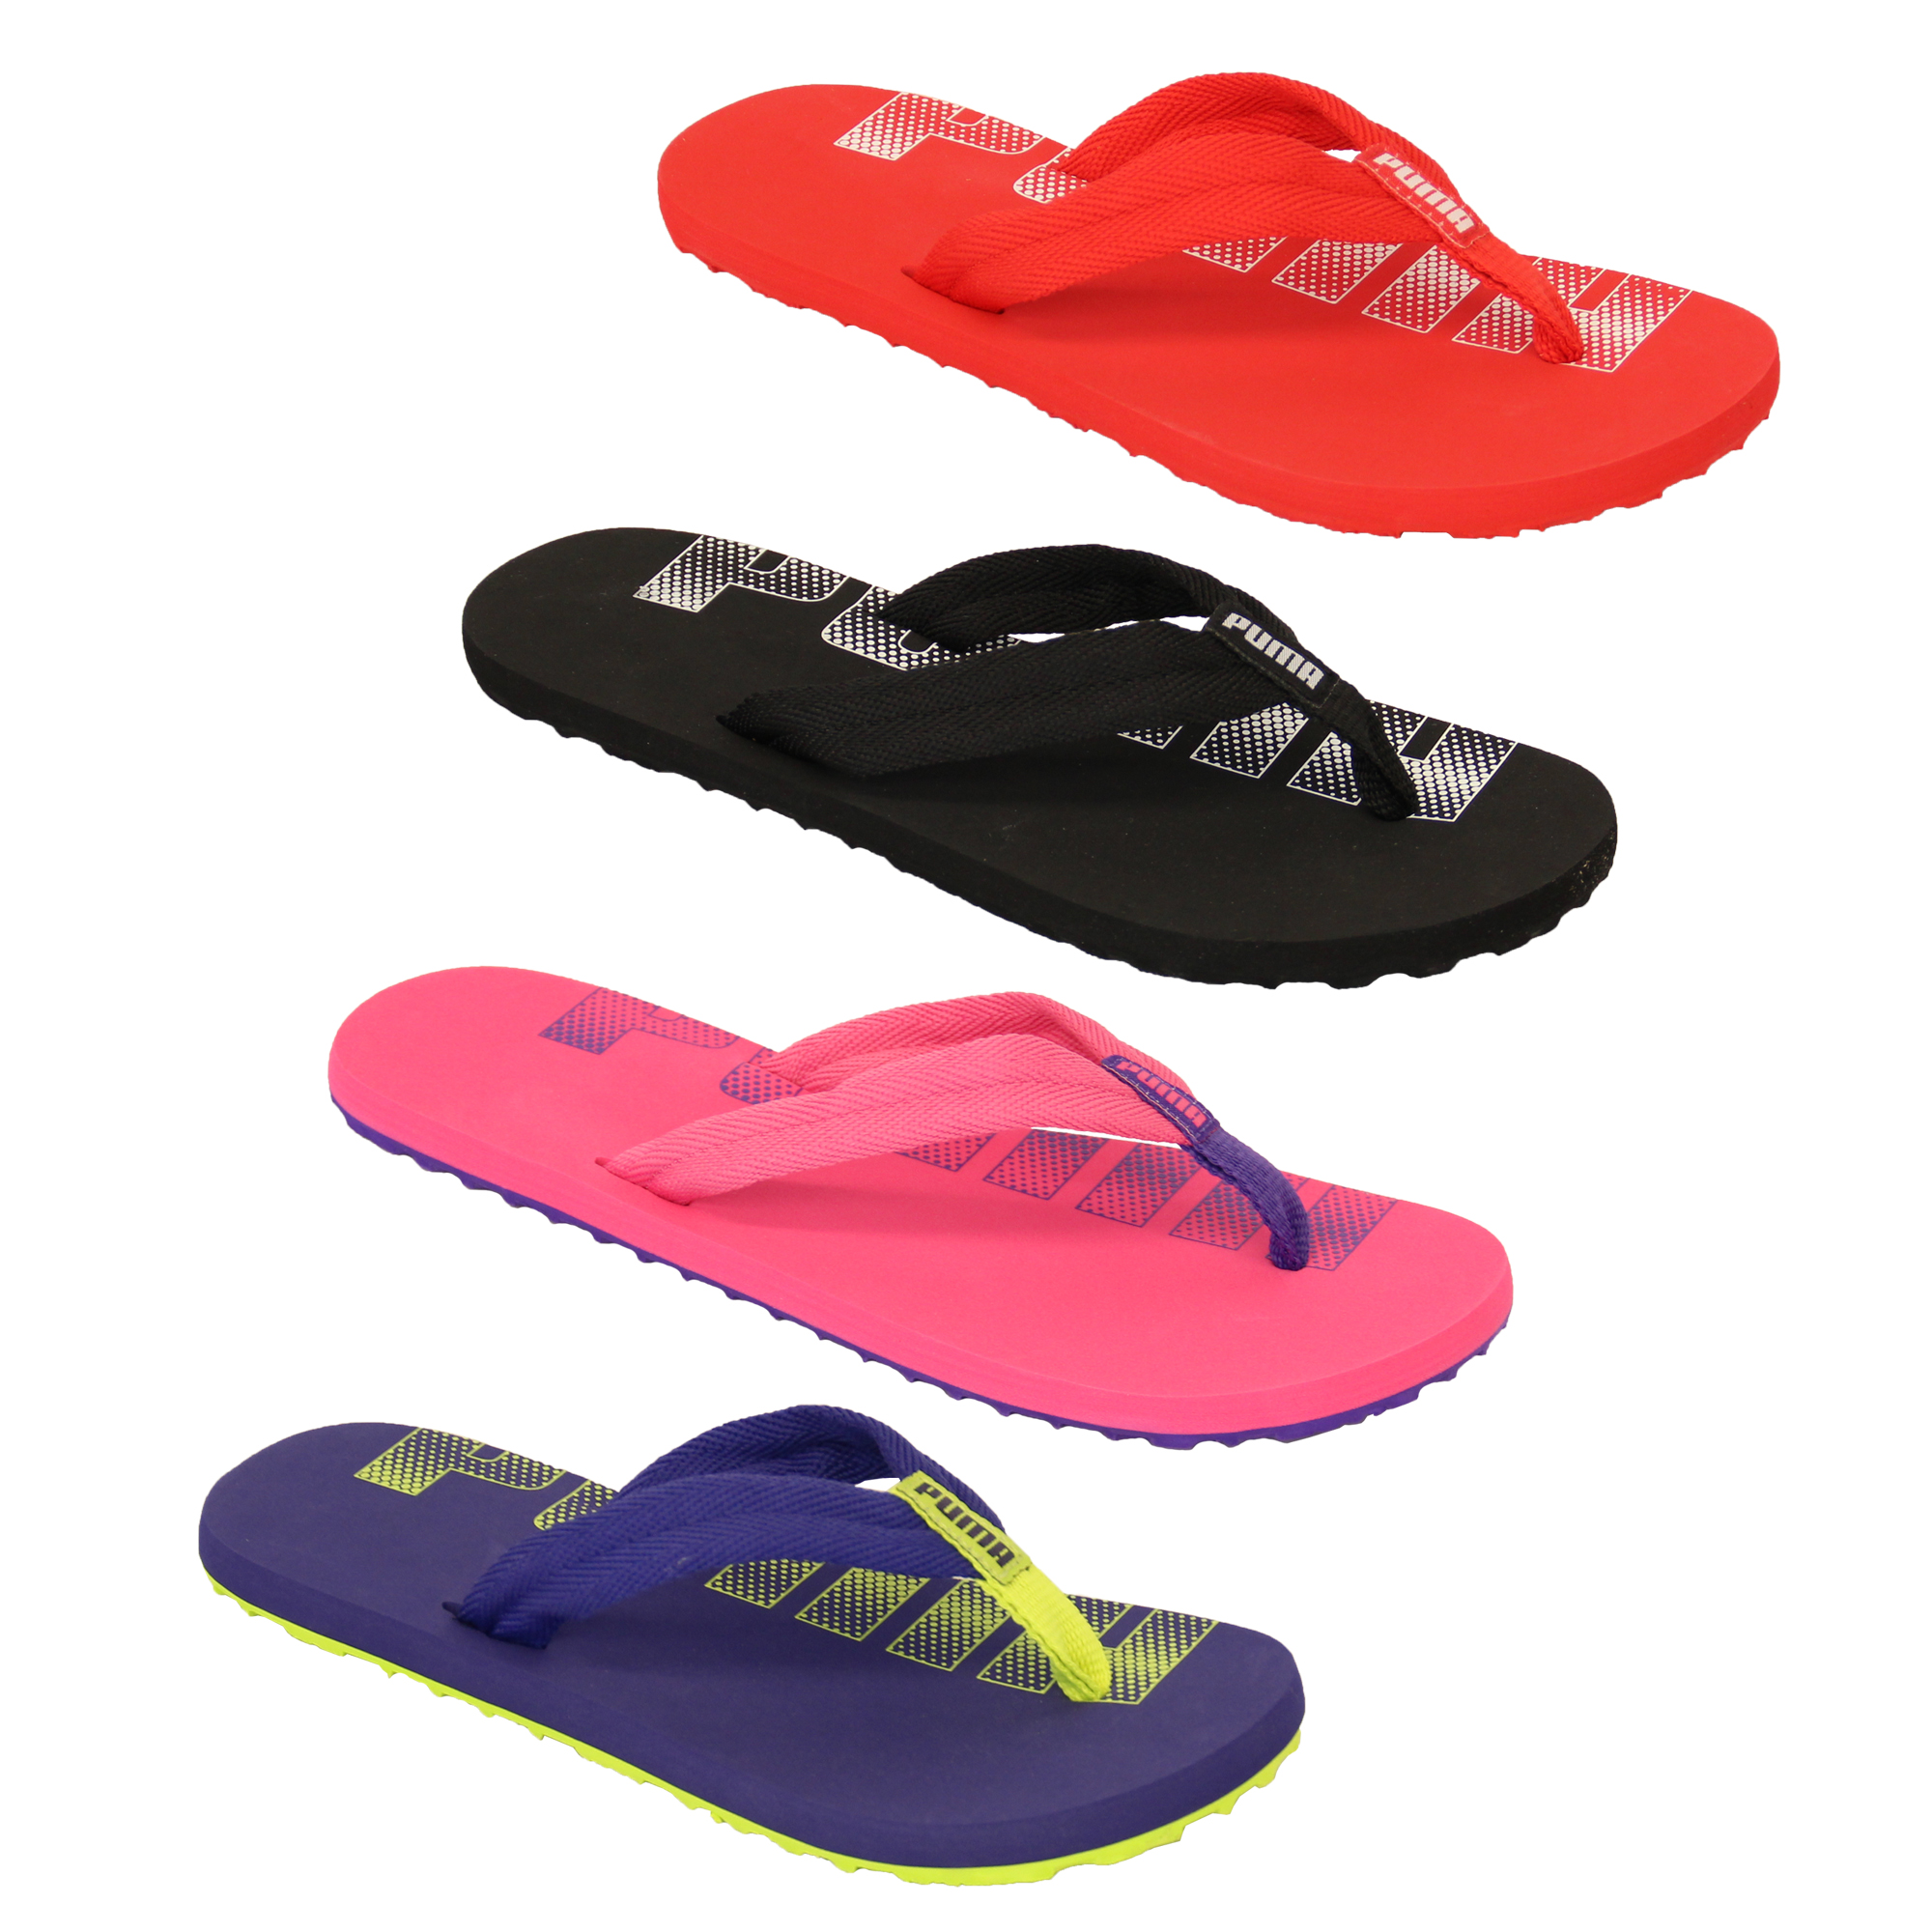 boys puma epic flip flops kids toe post girls sandals summer holidays beach new ebay. Black Bedroom Furniture Sets. Home Design Ideas